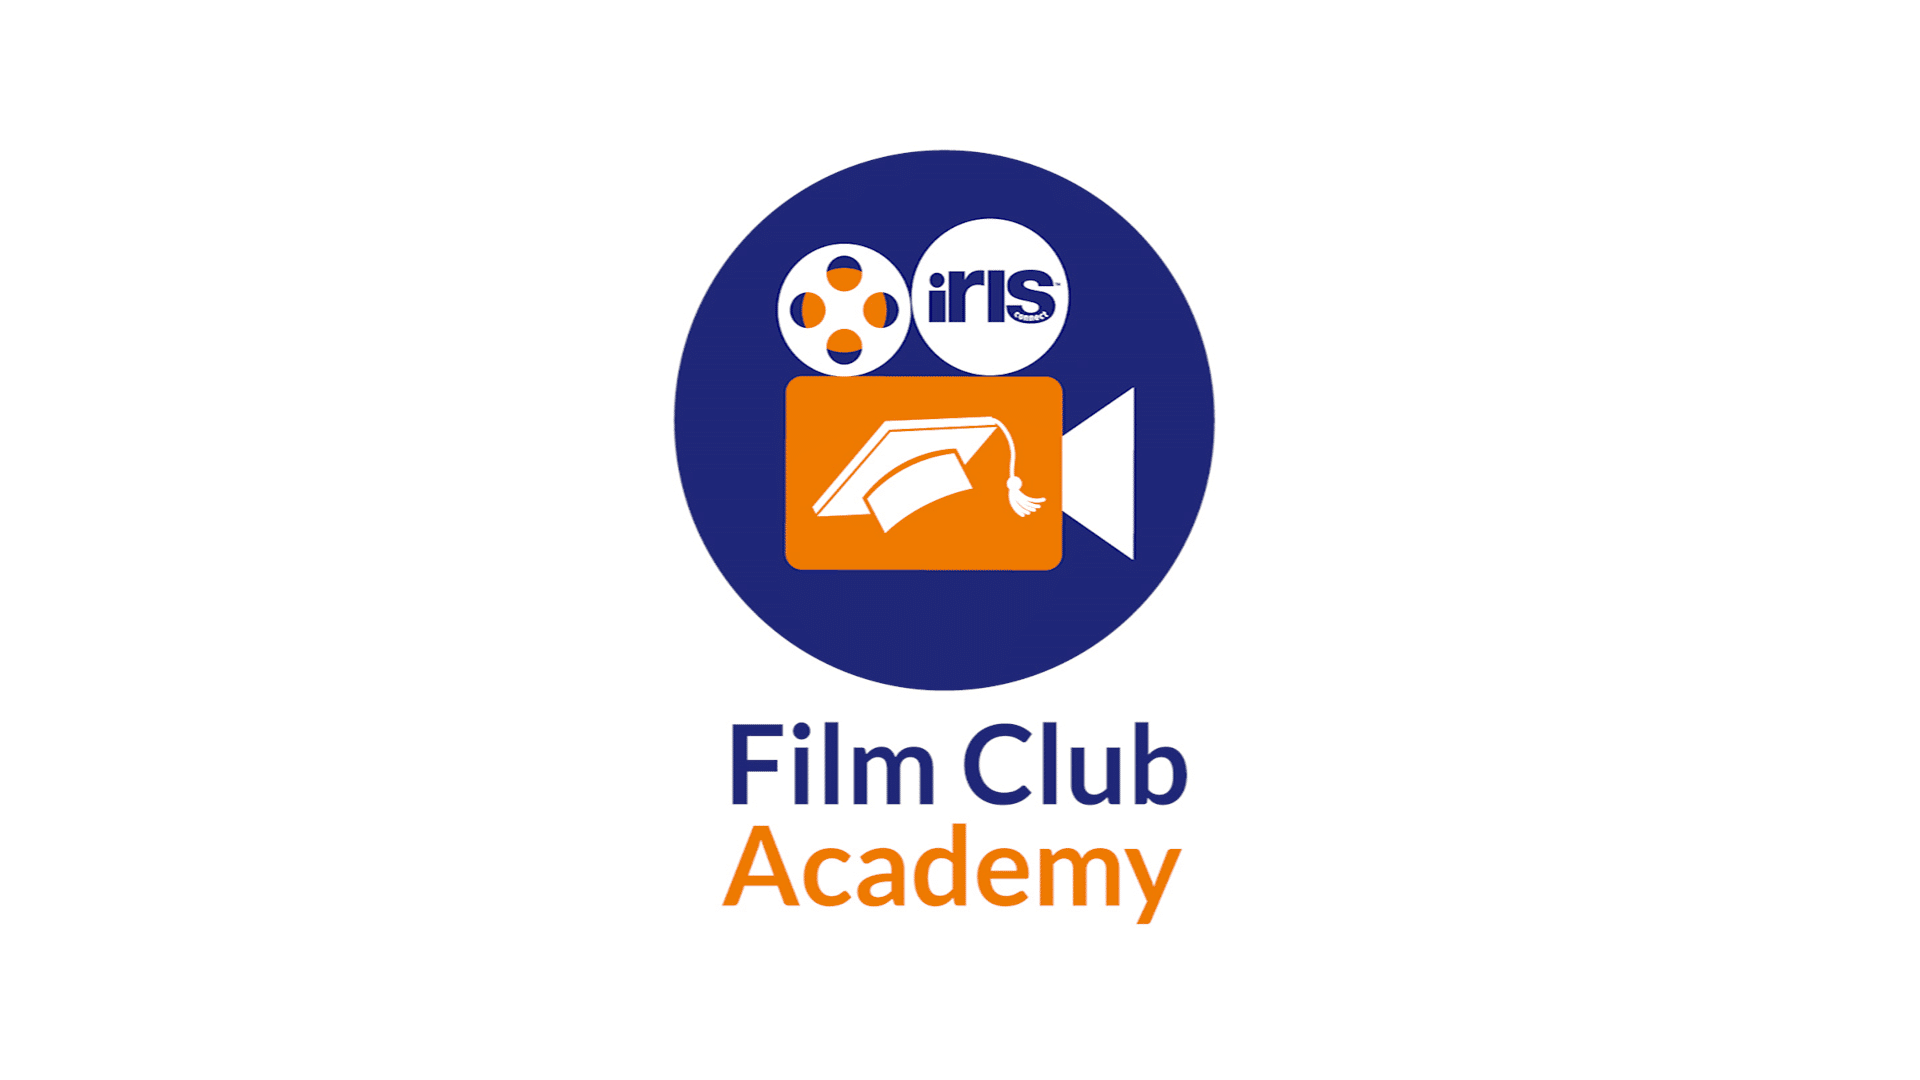 film club academy logo